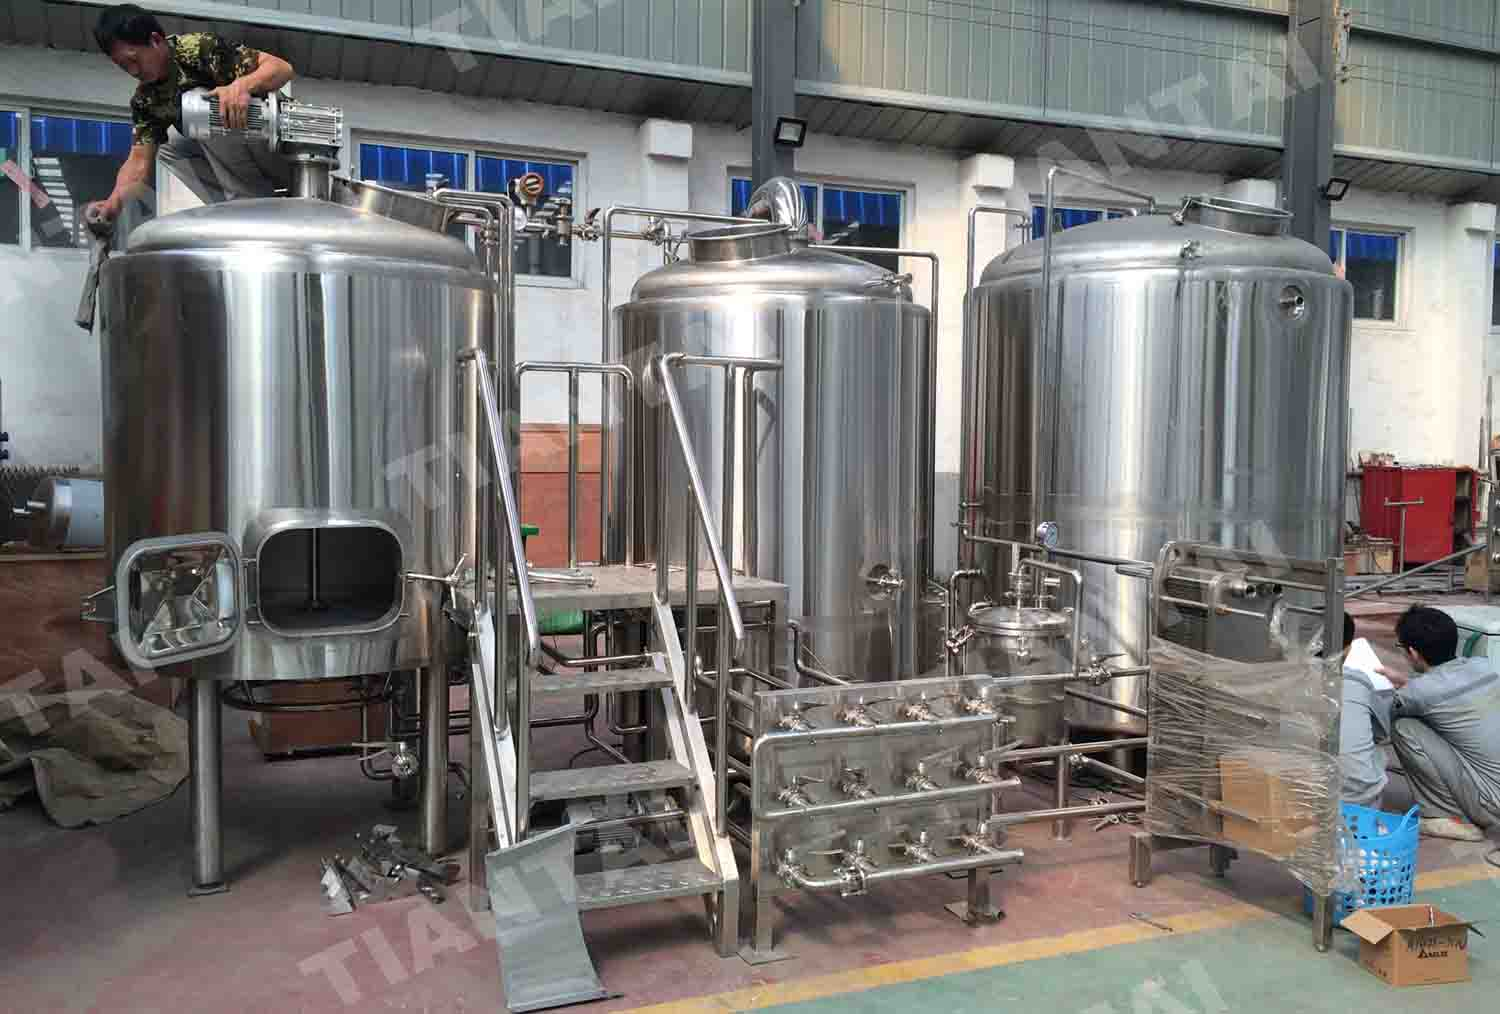 Turnkey 10bbl Beer Brewery System Delivered To Us News